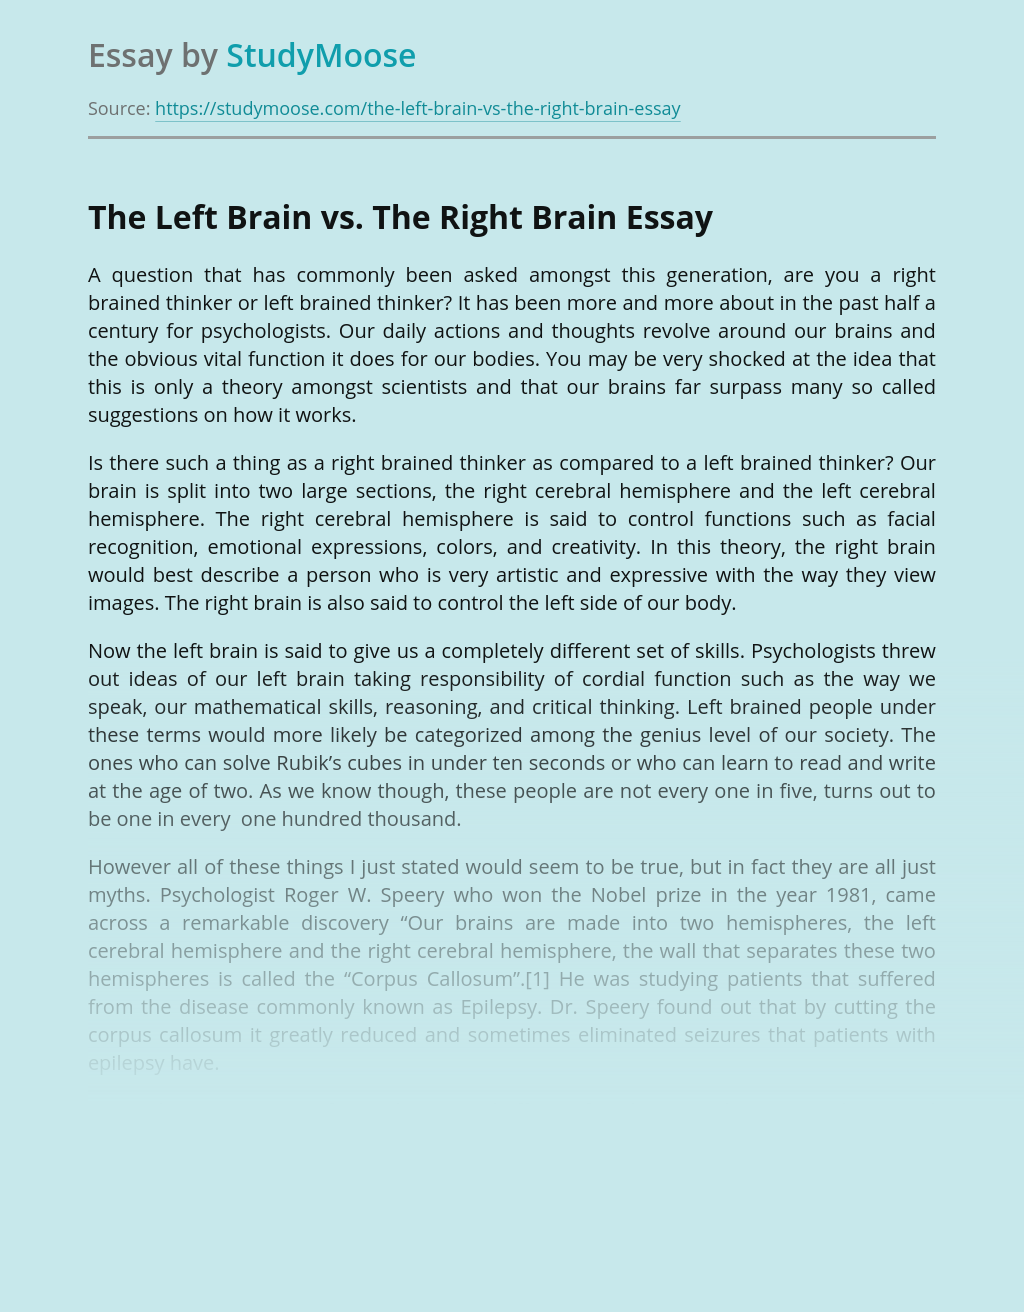 The Left Brain vs. The Right Brain